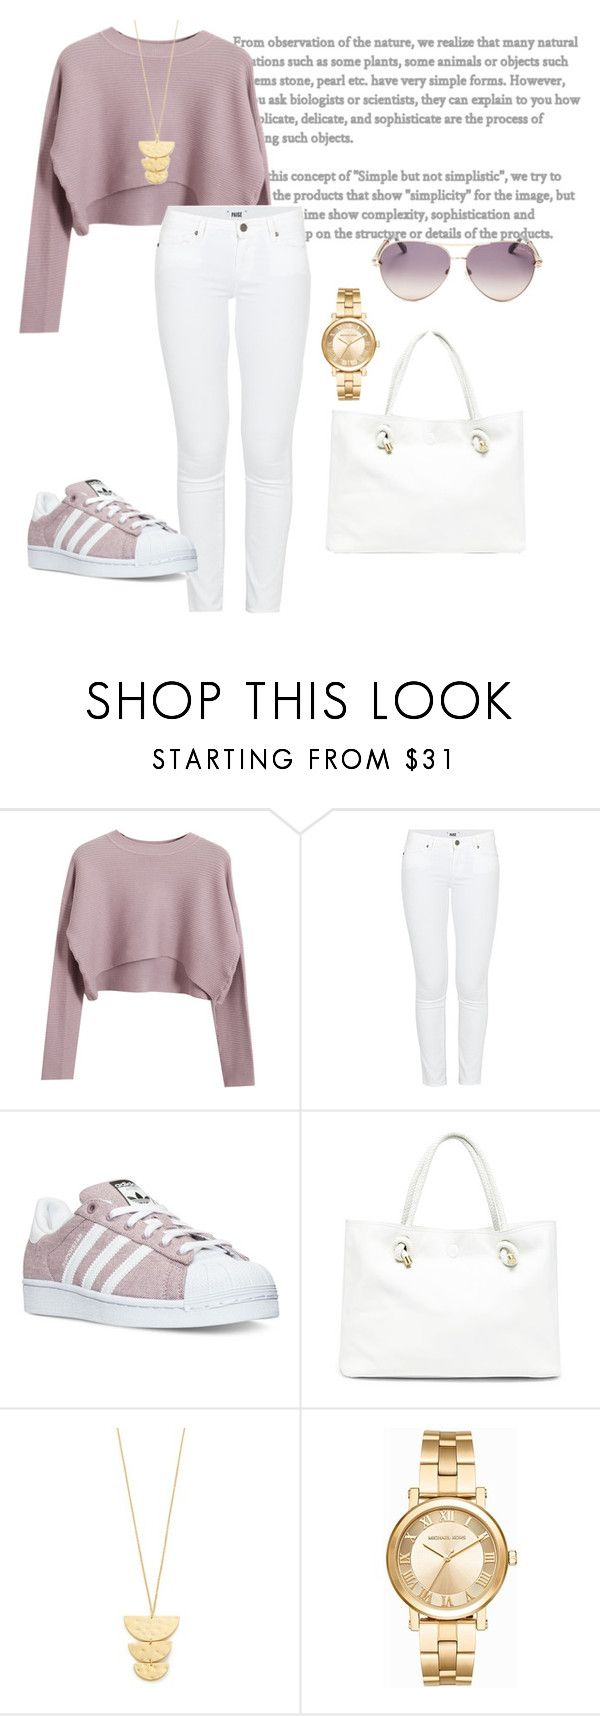 """Untitled #4"" by rwenx ❤ liked on Polyvore featuring Chicnova Fashion, Paige Denim, adidas, Sole Society, Gorjana, Michael Kors and Roberto Cavalli"